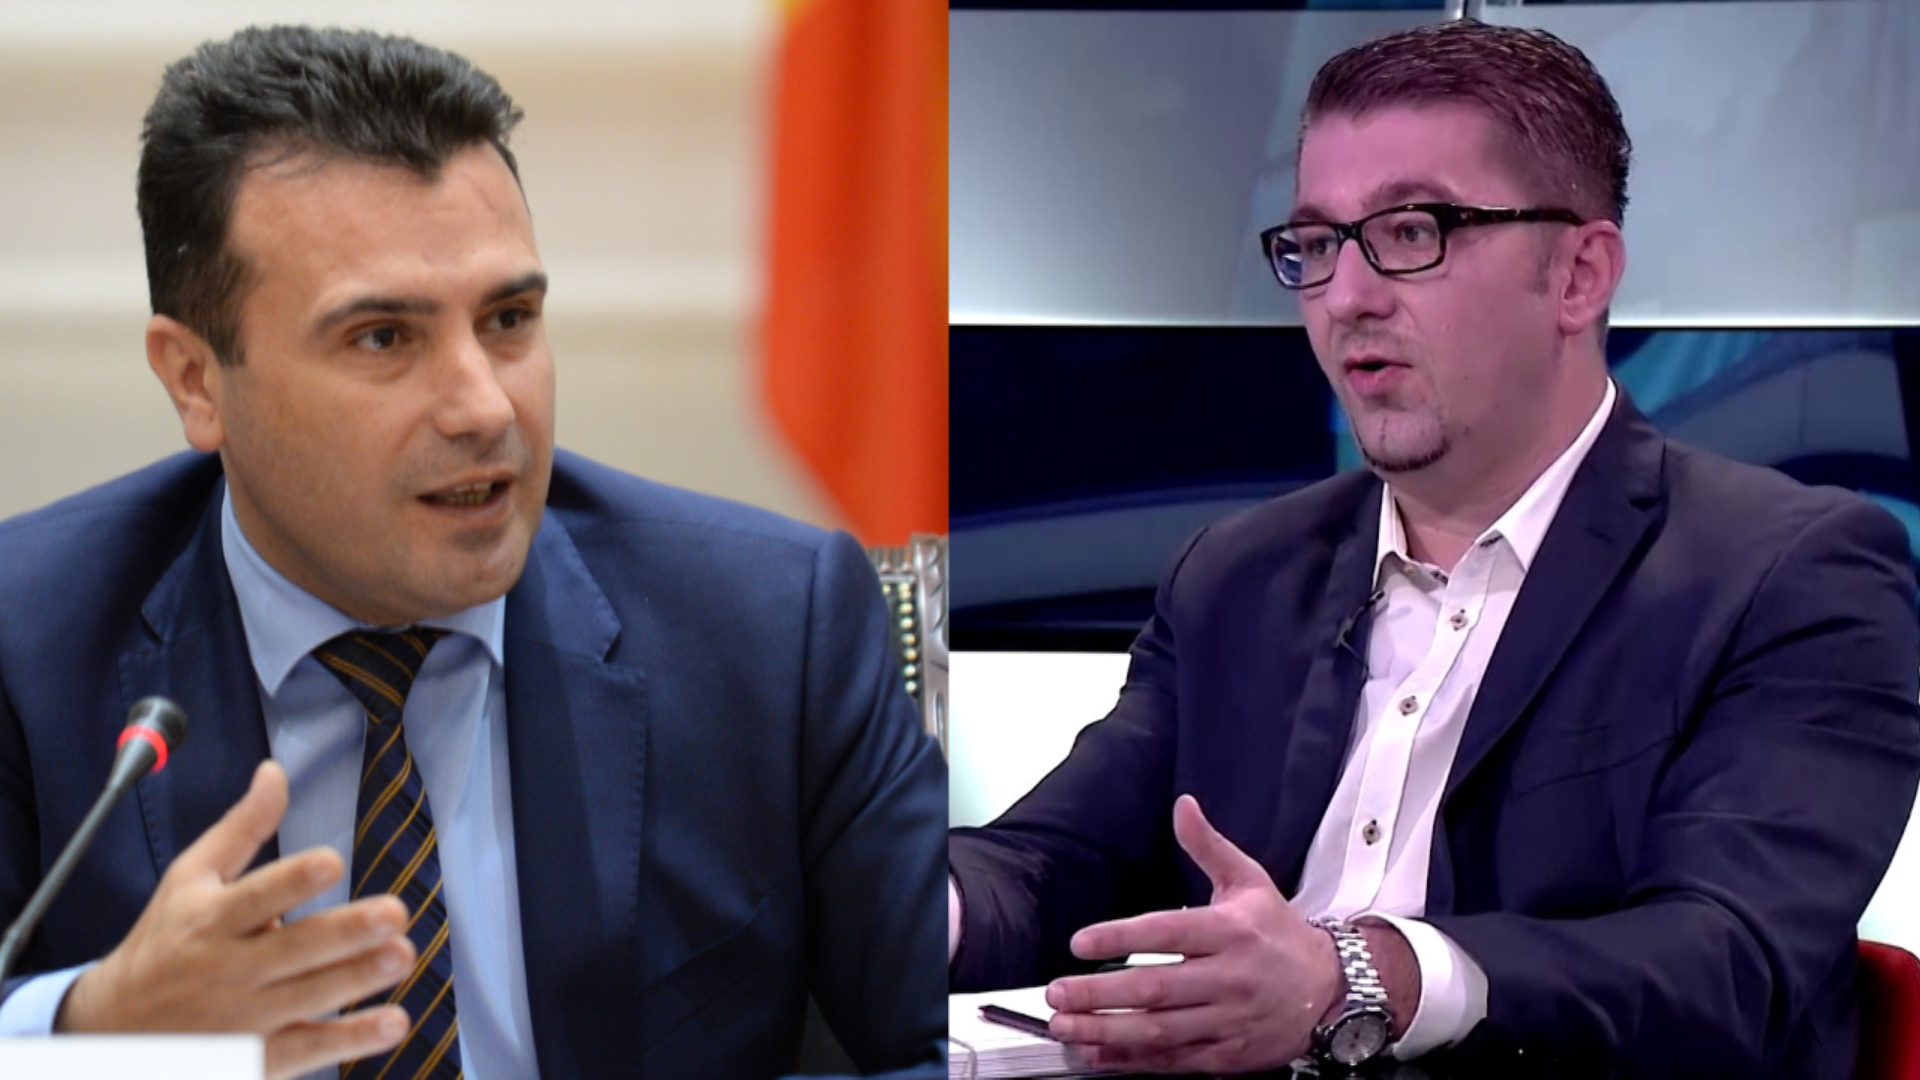 North Macedonia: Reforms in the judiciary – Government, Opposition on opposite fronts